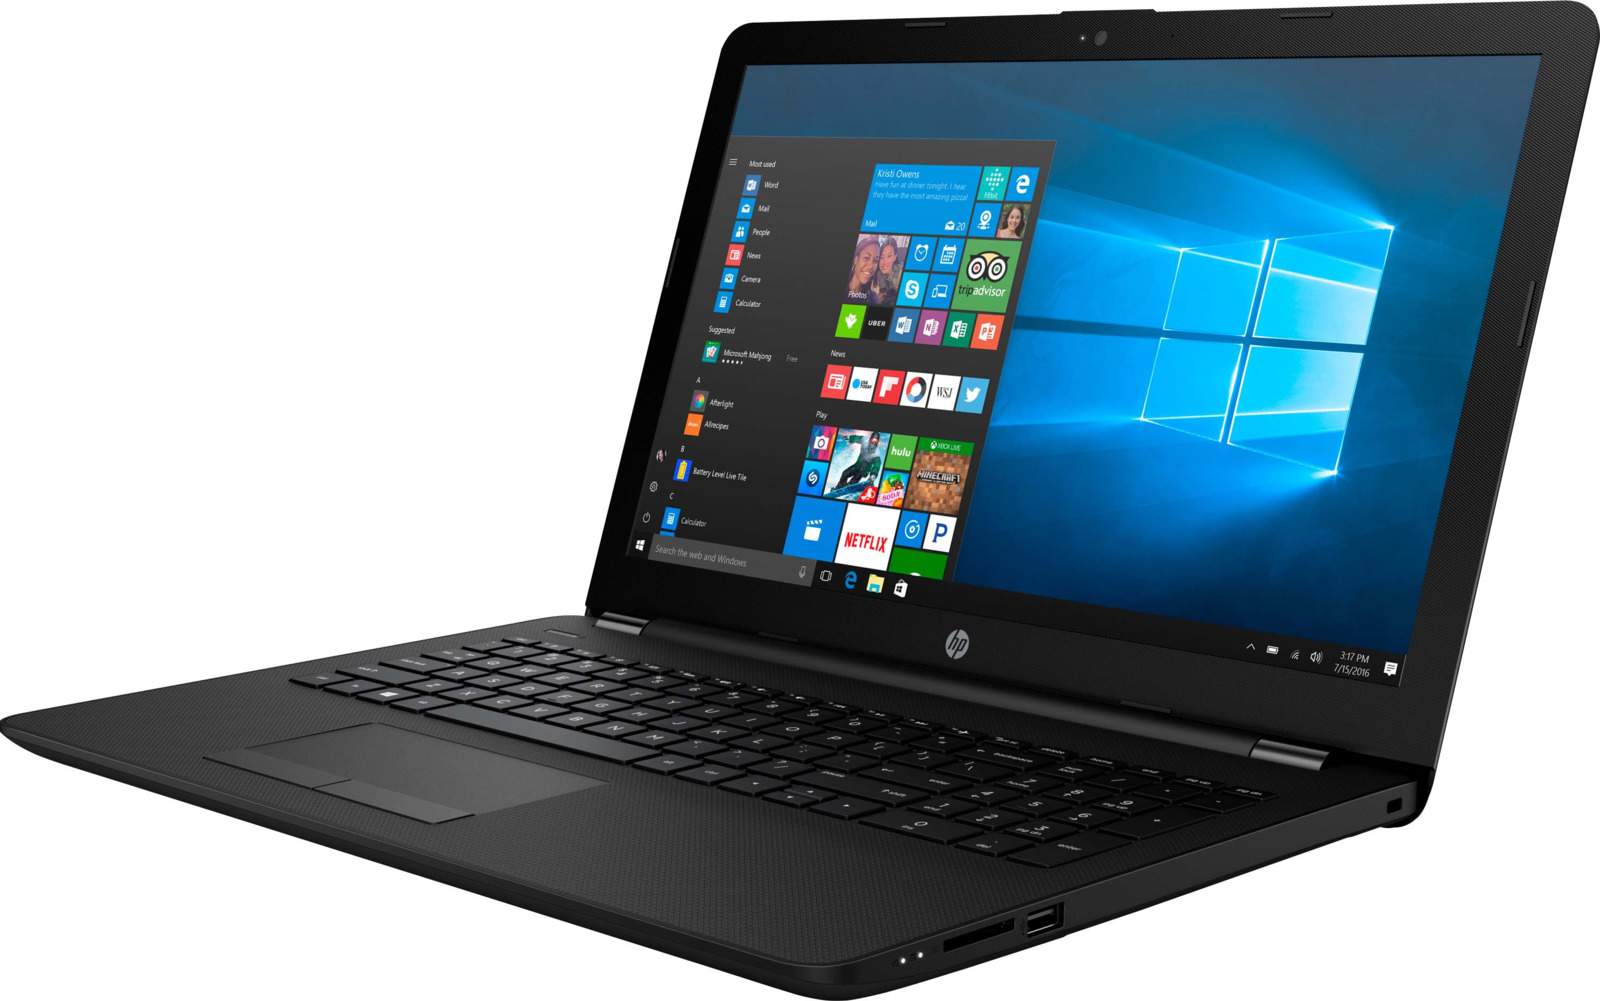 Ноутбук HP 15-bs019ur, Black ноутбук dell vostro 5468 core i5 7200u 4gb 1tb nv 940mx 2gb 14 0 win10 grey